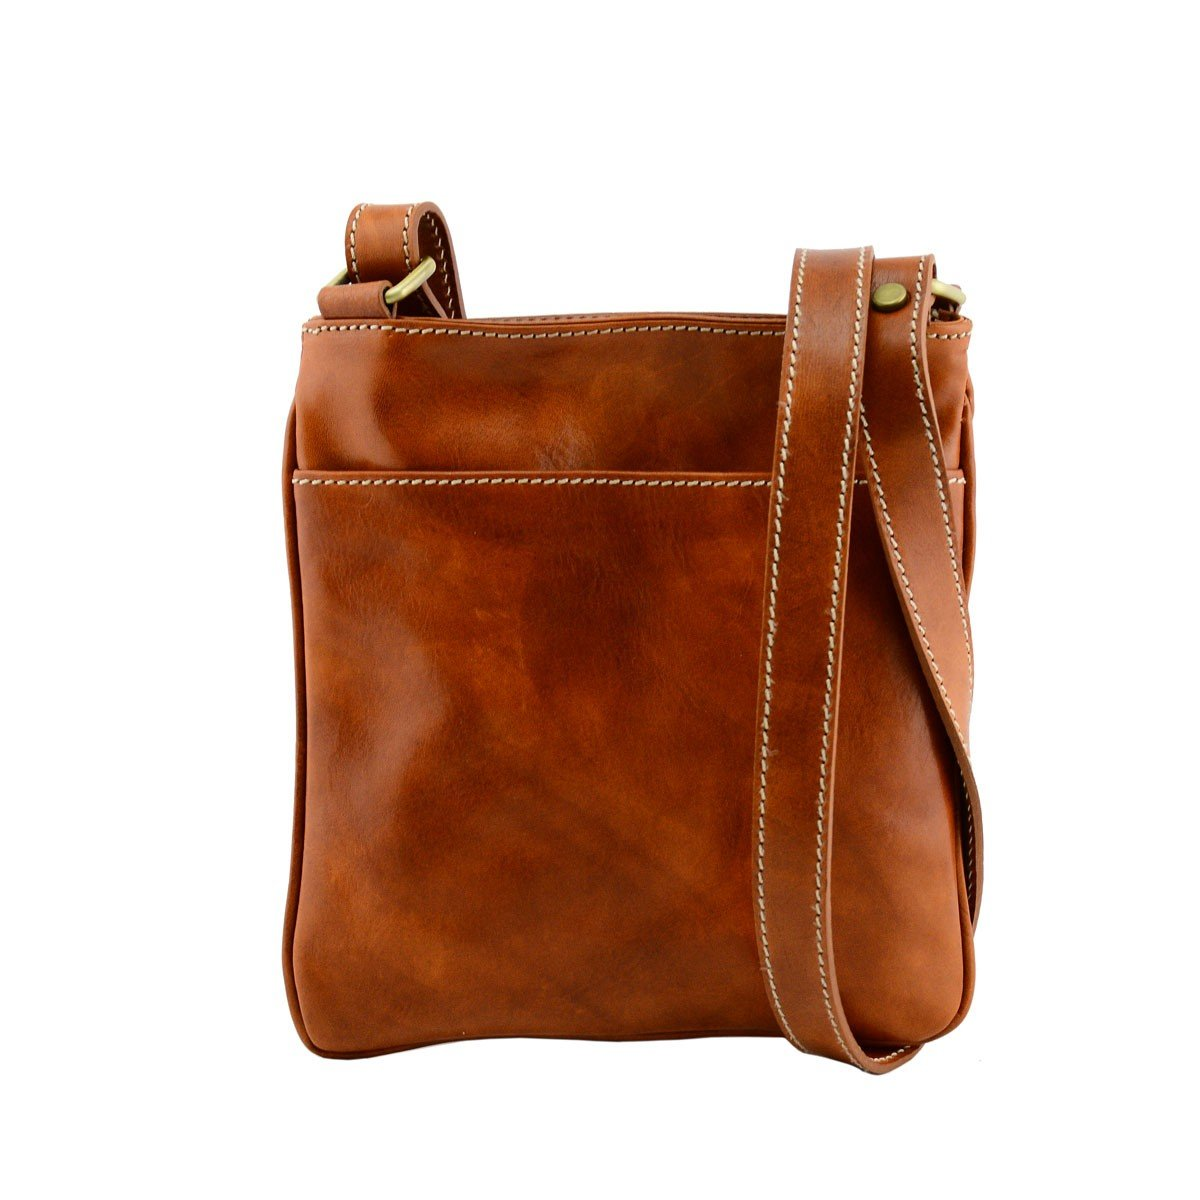 Dream Leather Bags Made in Italy Genuine Leather メンズ US サイズ: 1 M US B079FLHTCH